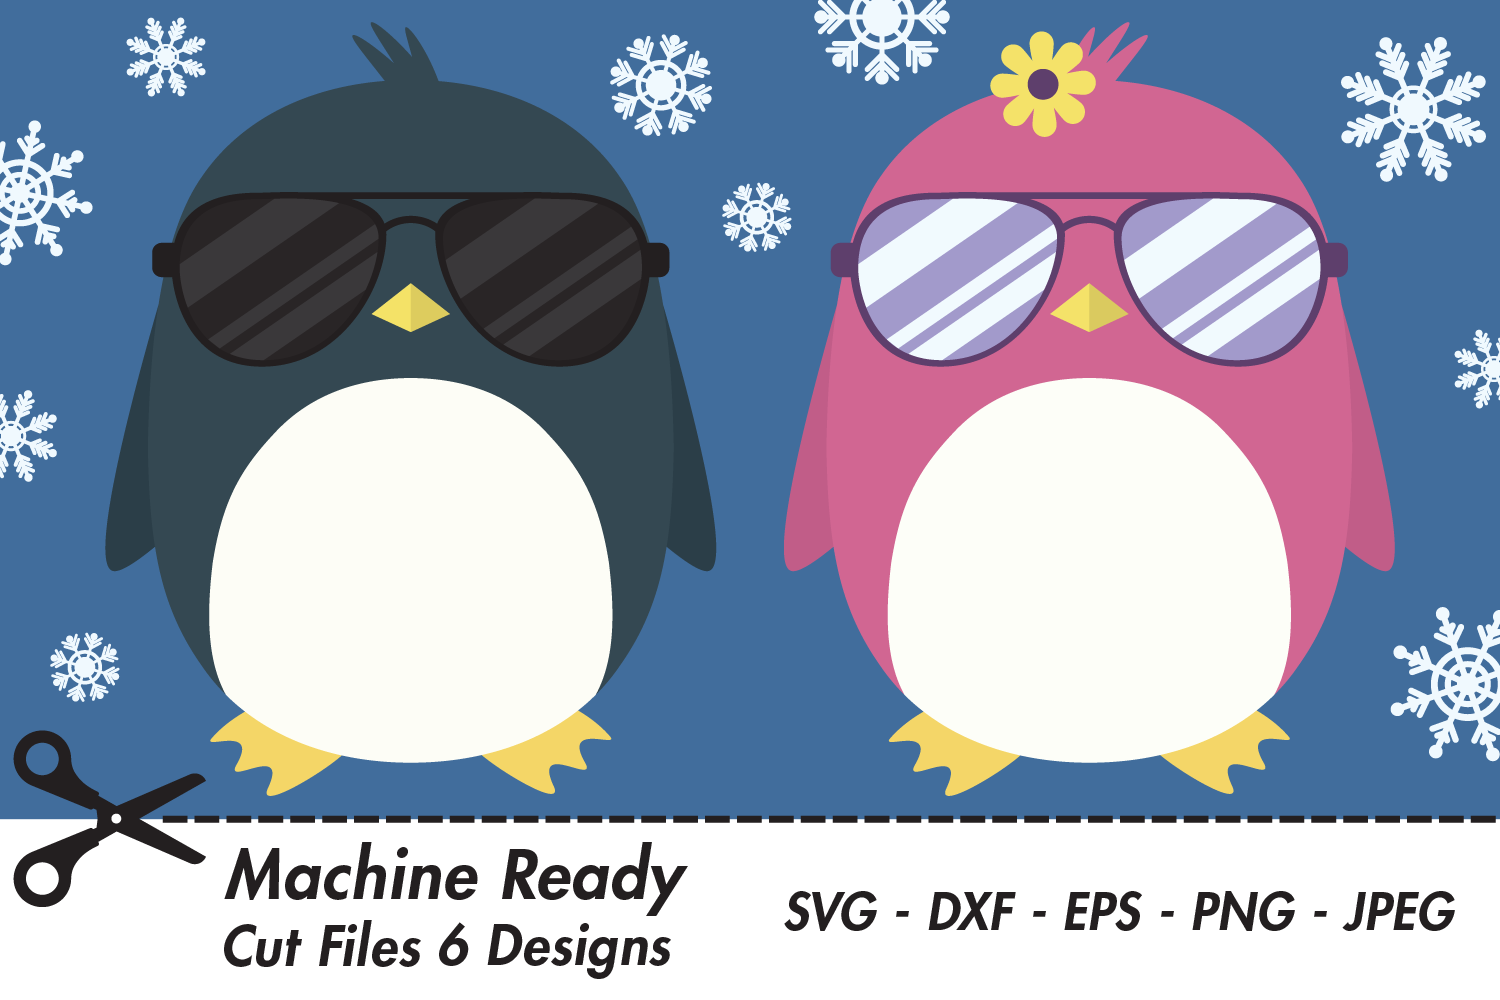 Download Free Cool Penguins With Shades And Snowflakes Graphic By for Cricut Explore, Silhouette and other cutting machines.